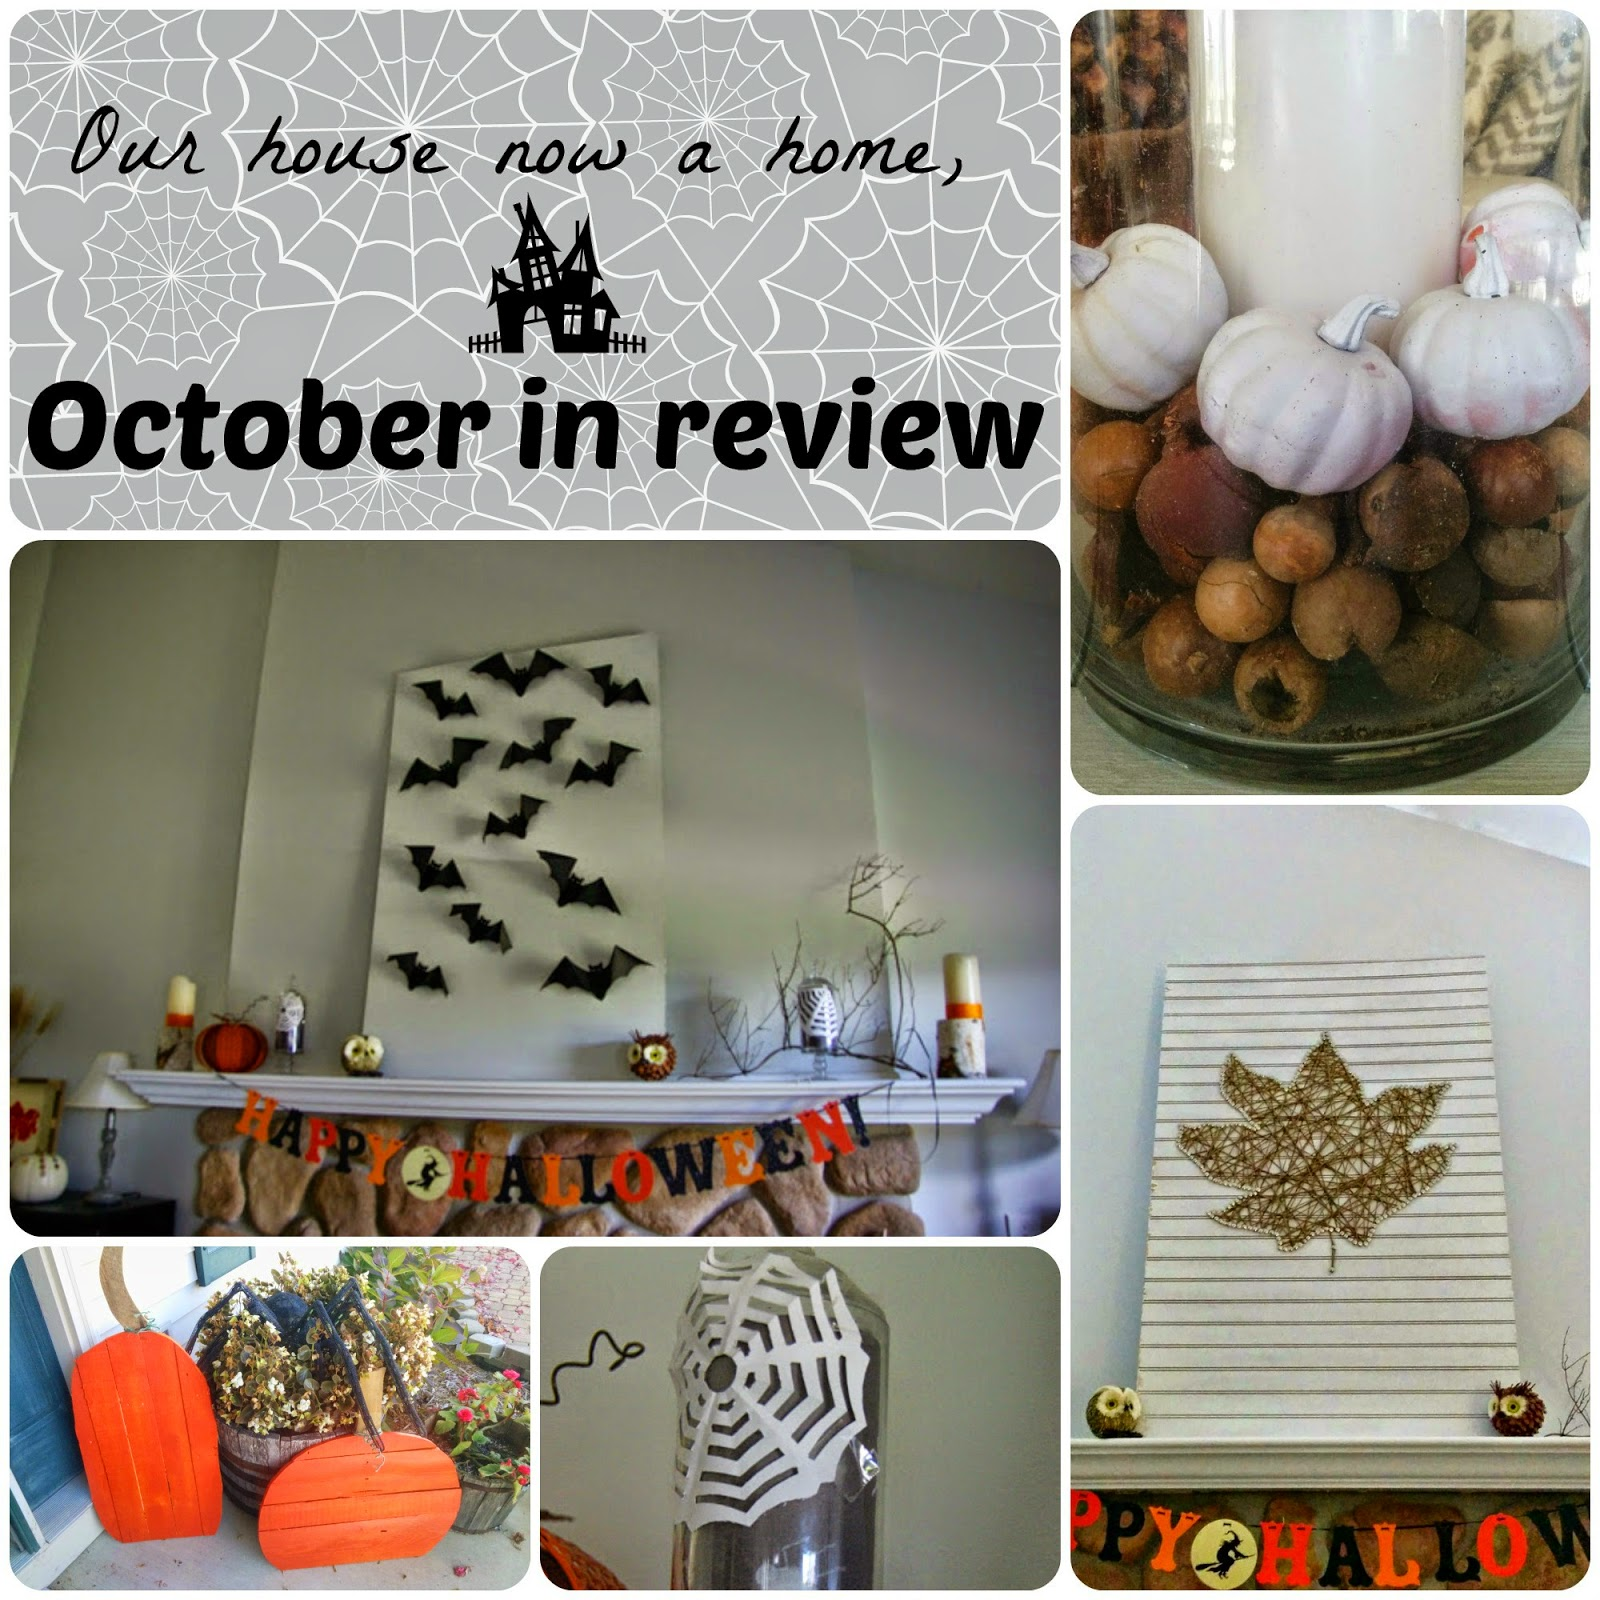 What I was up to, October in review